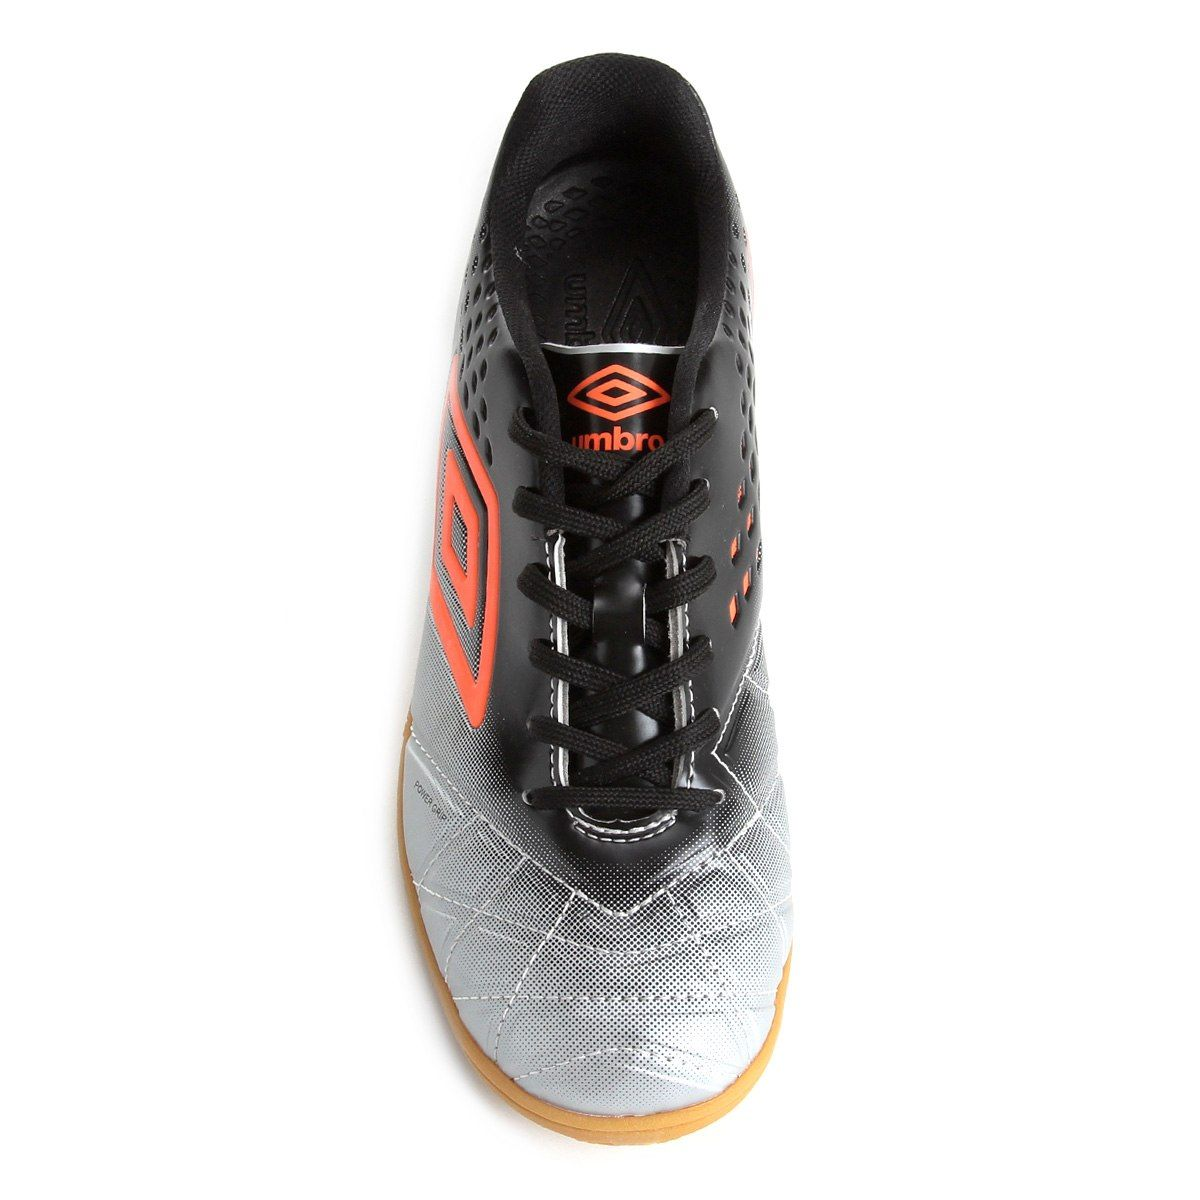 83028805f42bb Tenis Umbro Fifty Pro Futsal 0F72093-816 - Dozze Shoes